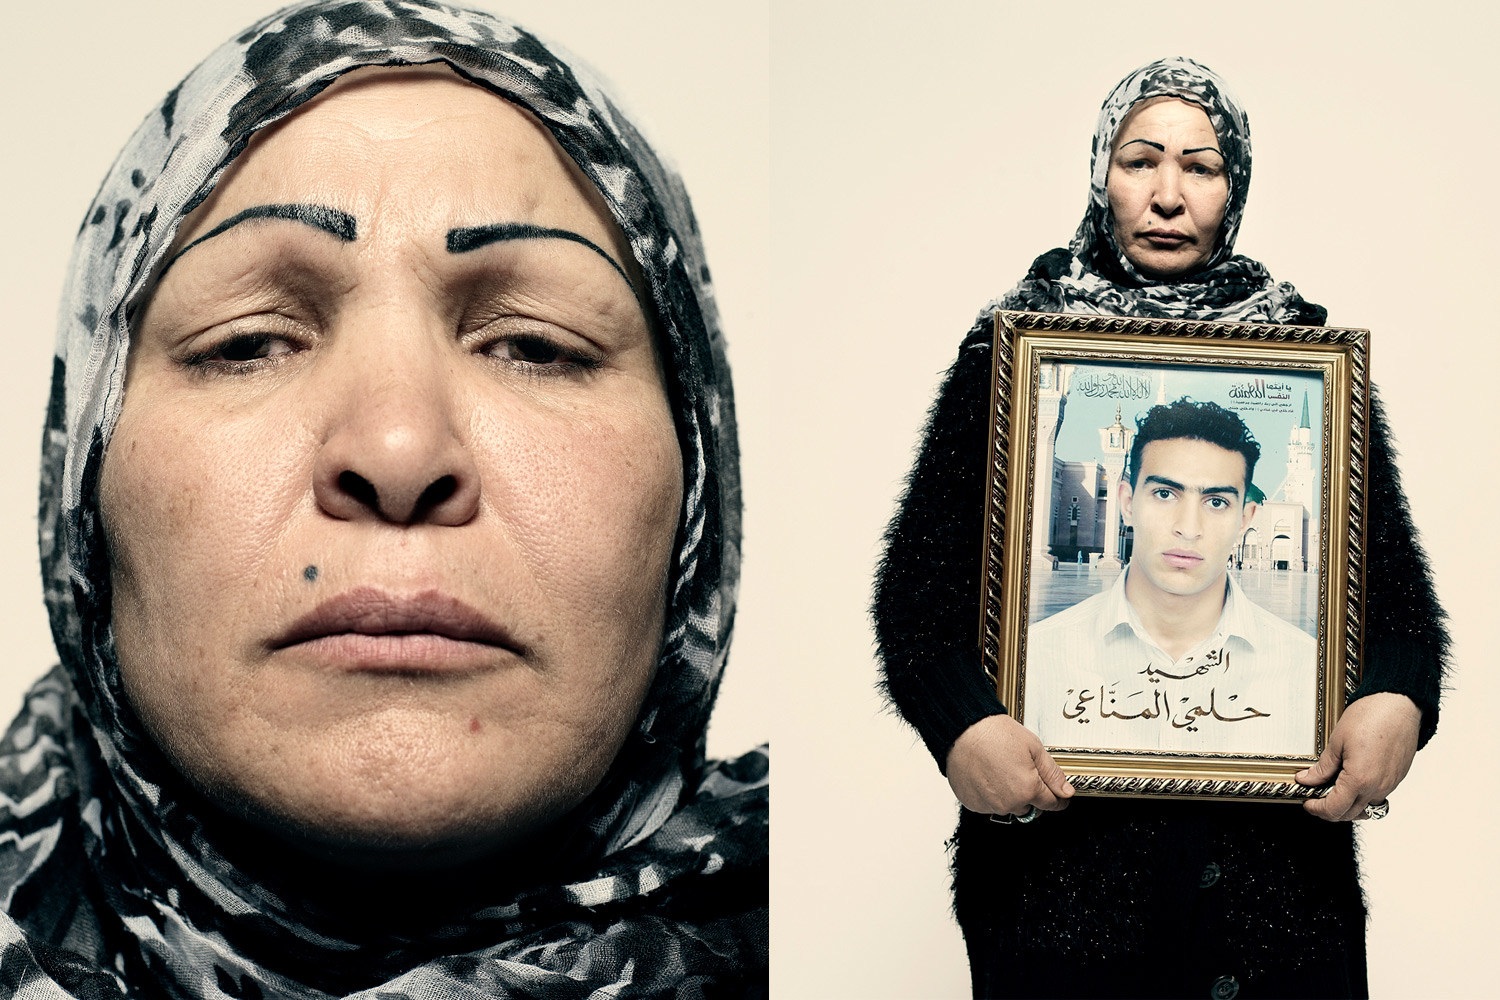 Sayda al-Manahe's son Hilme was shot by a sniper during a protest in Tunis on Jan. 13. He was buried the day Ben Ali fled the country.  My son is now a symbol, a symbol of Tunis. He gave his life so we can have freedom.